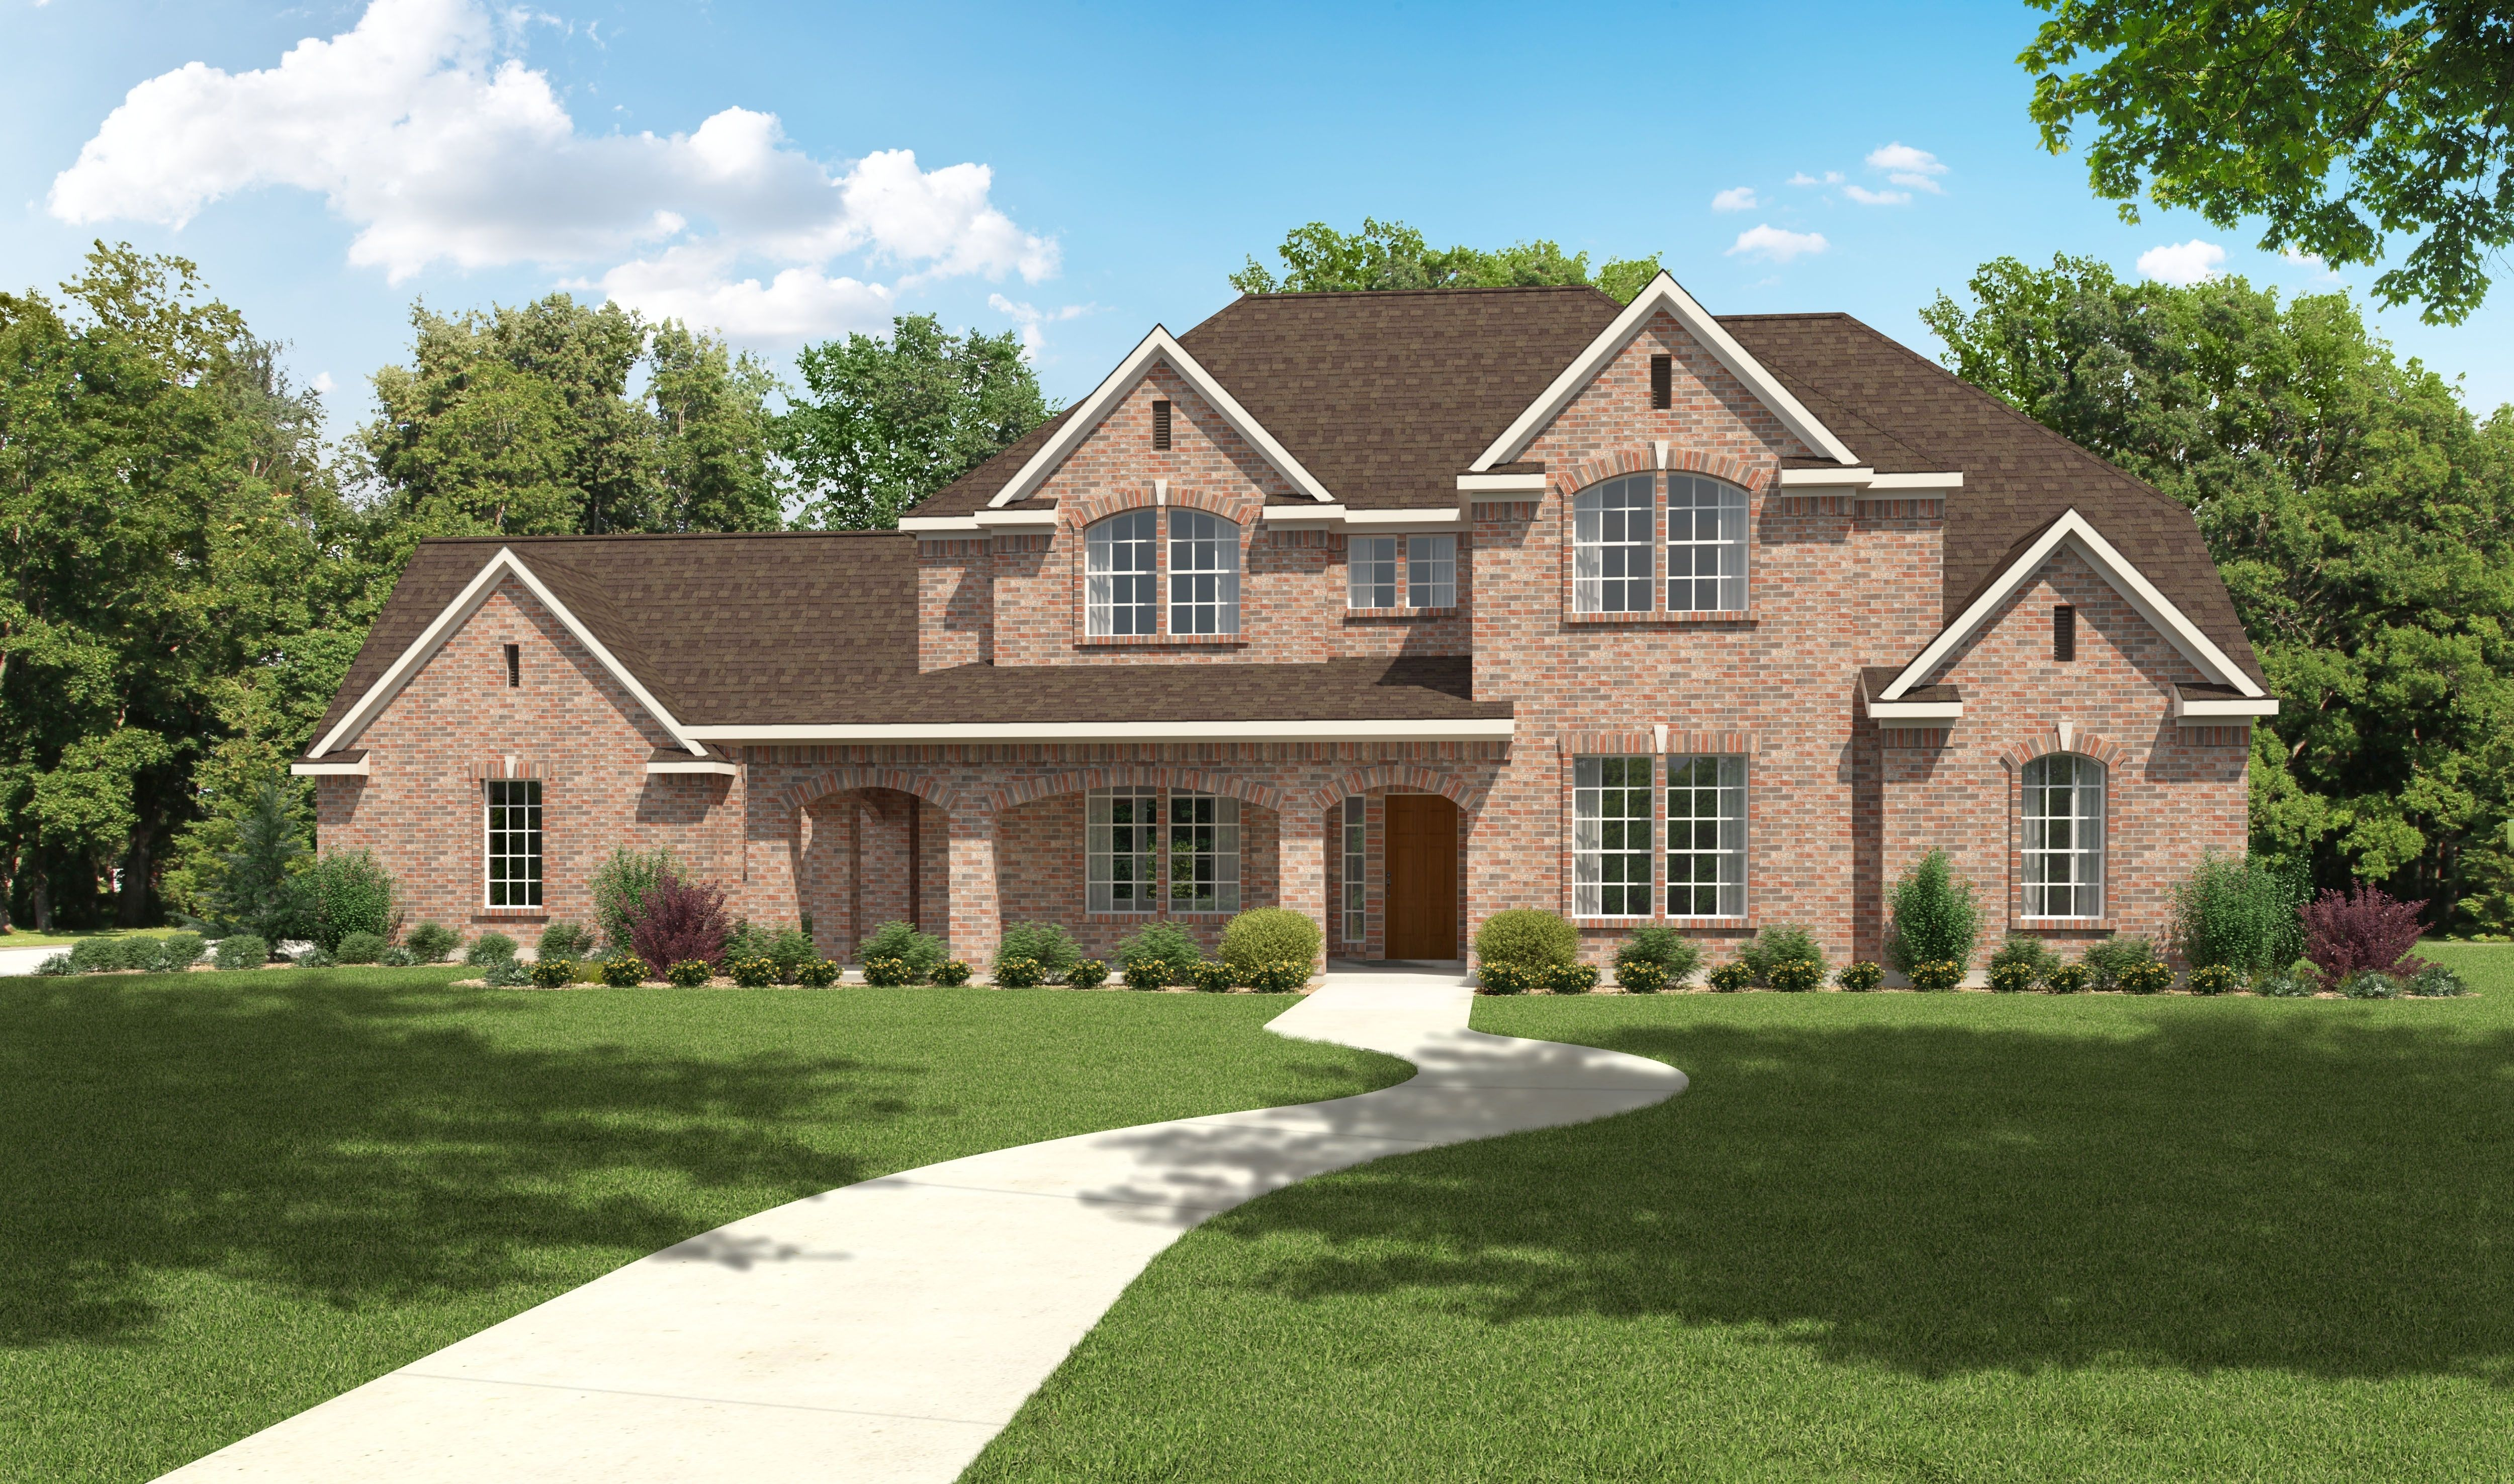 The woodbridge 3000 sq ft house plans design tech homes 3000 square foot homes